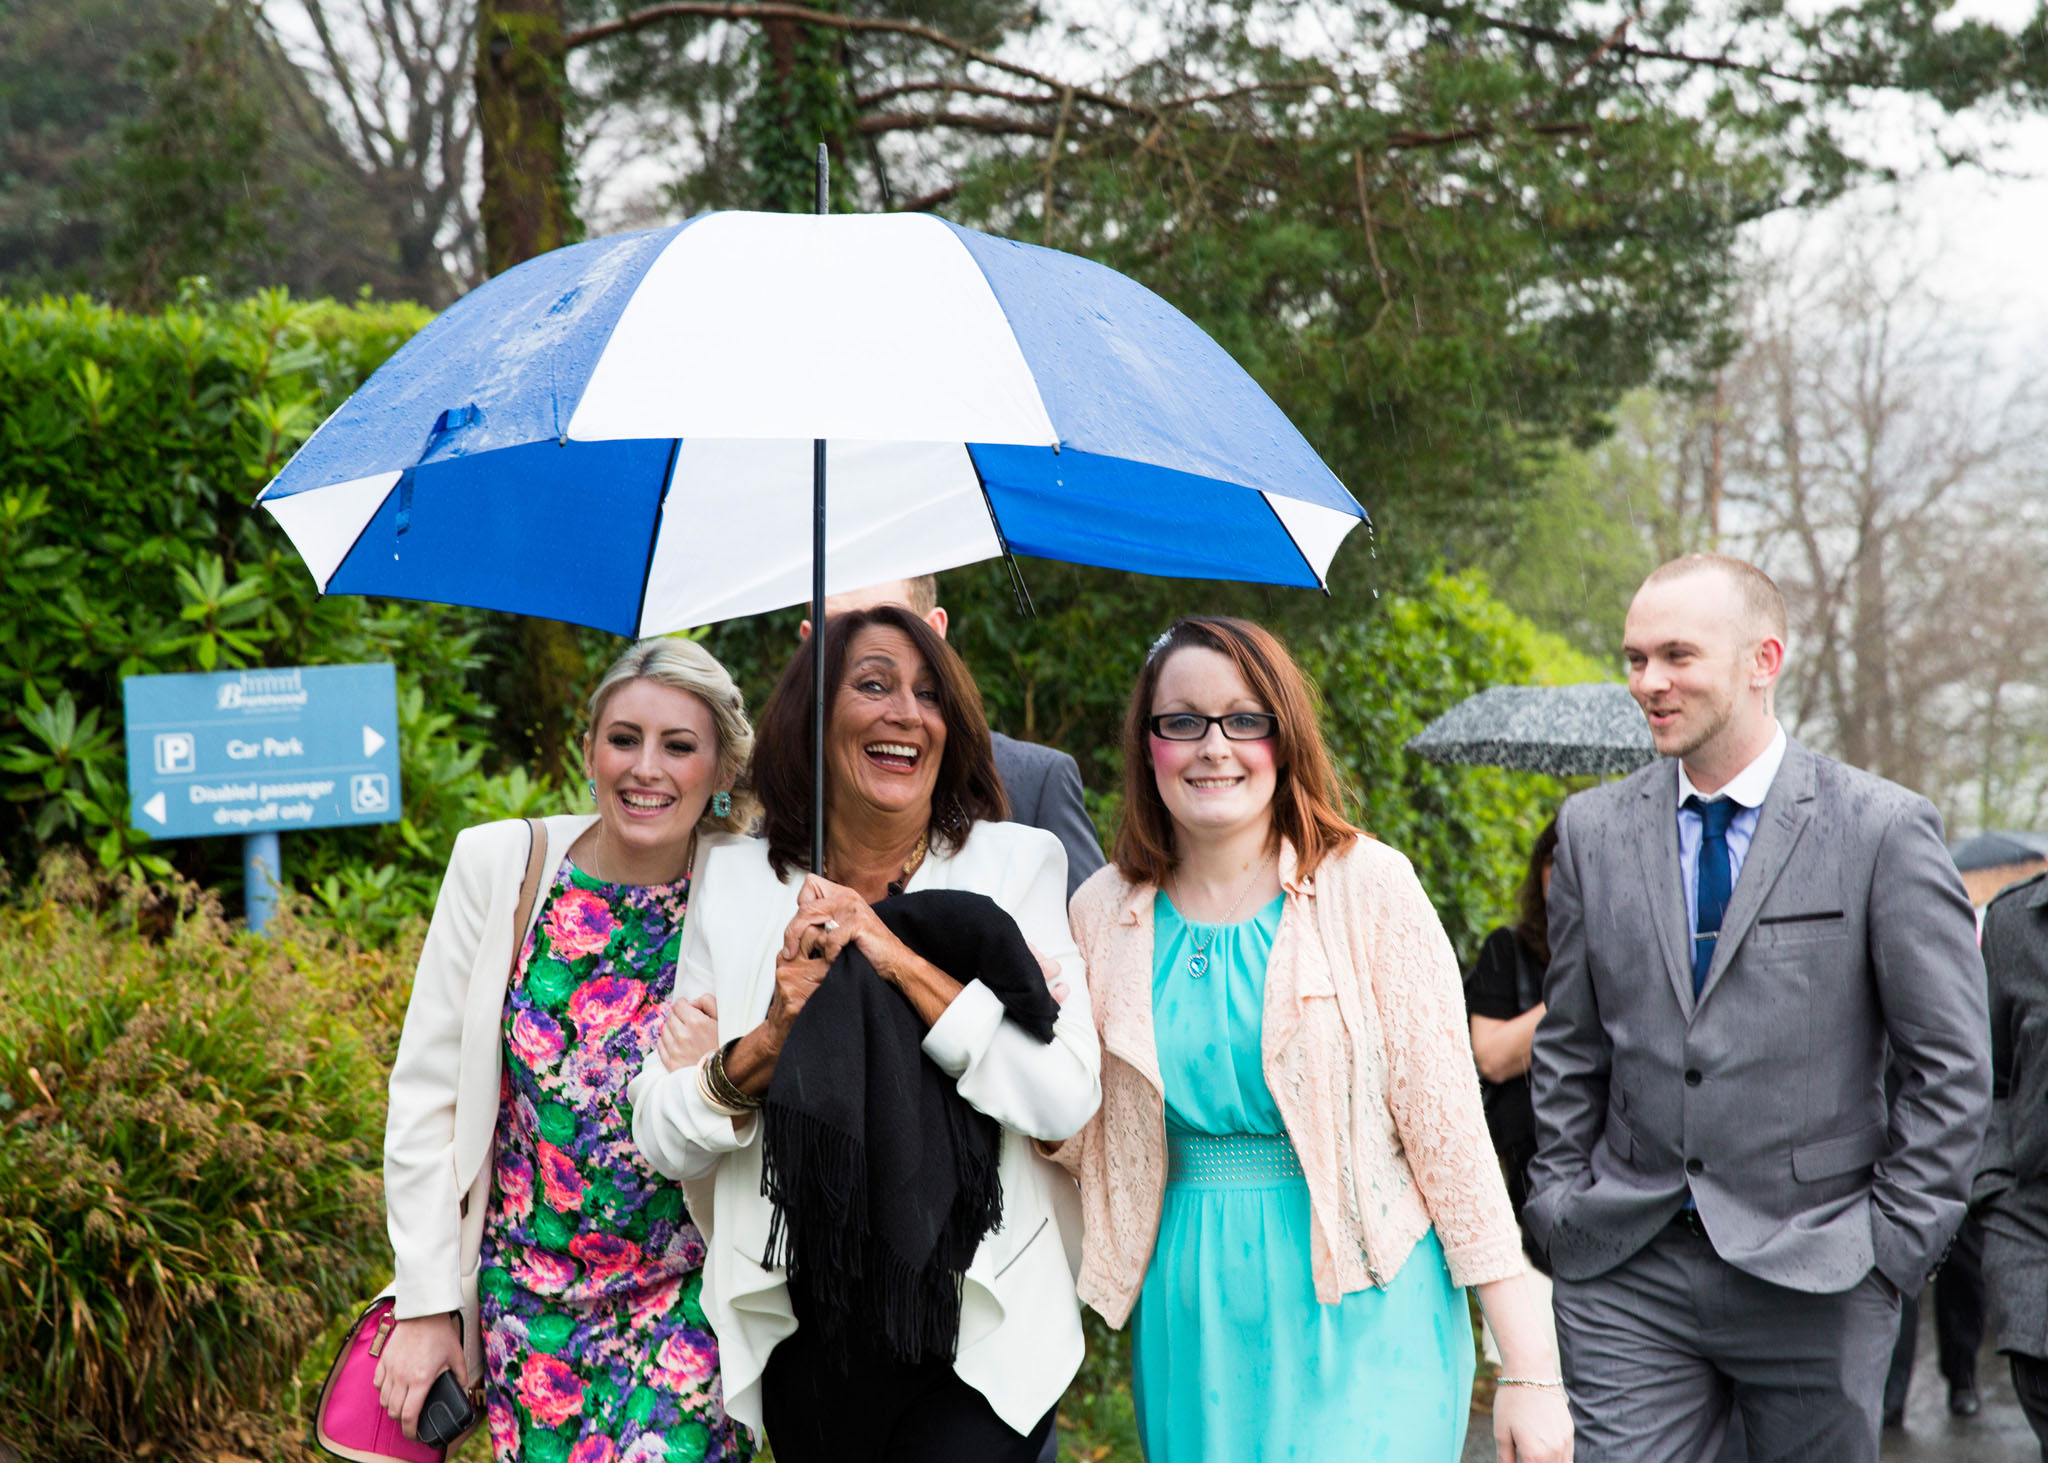 The rain doesn't stop people having fun at a family celebration at Coniston in the Lake District